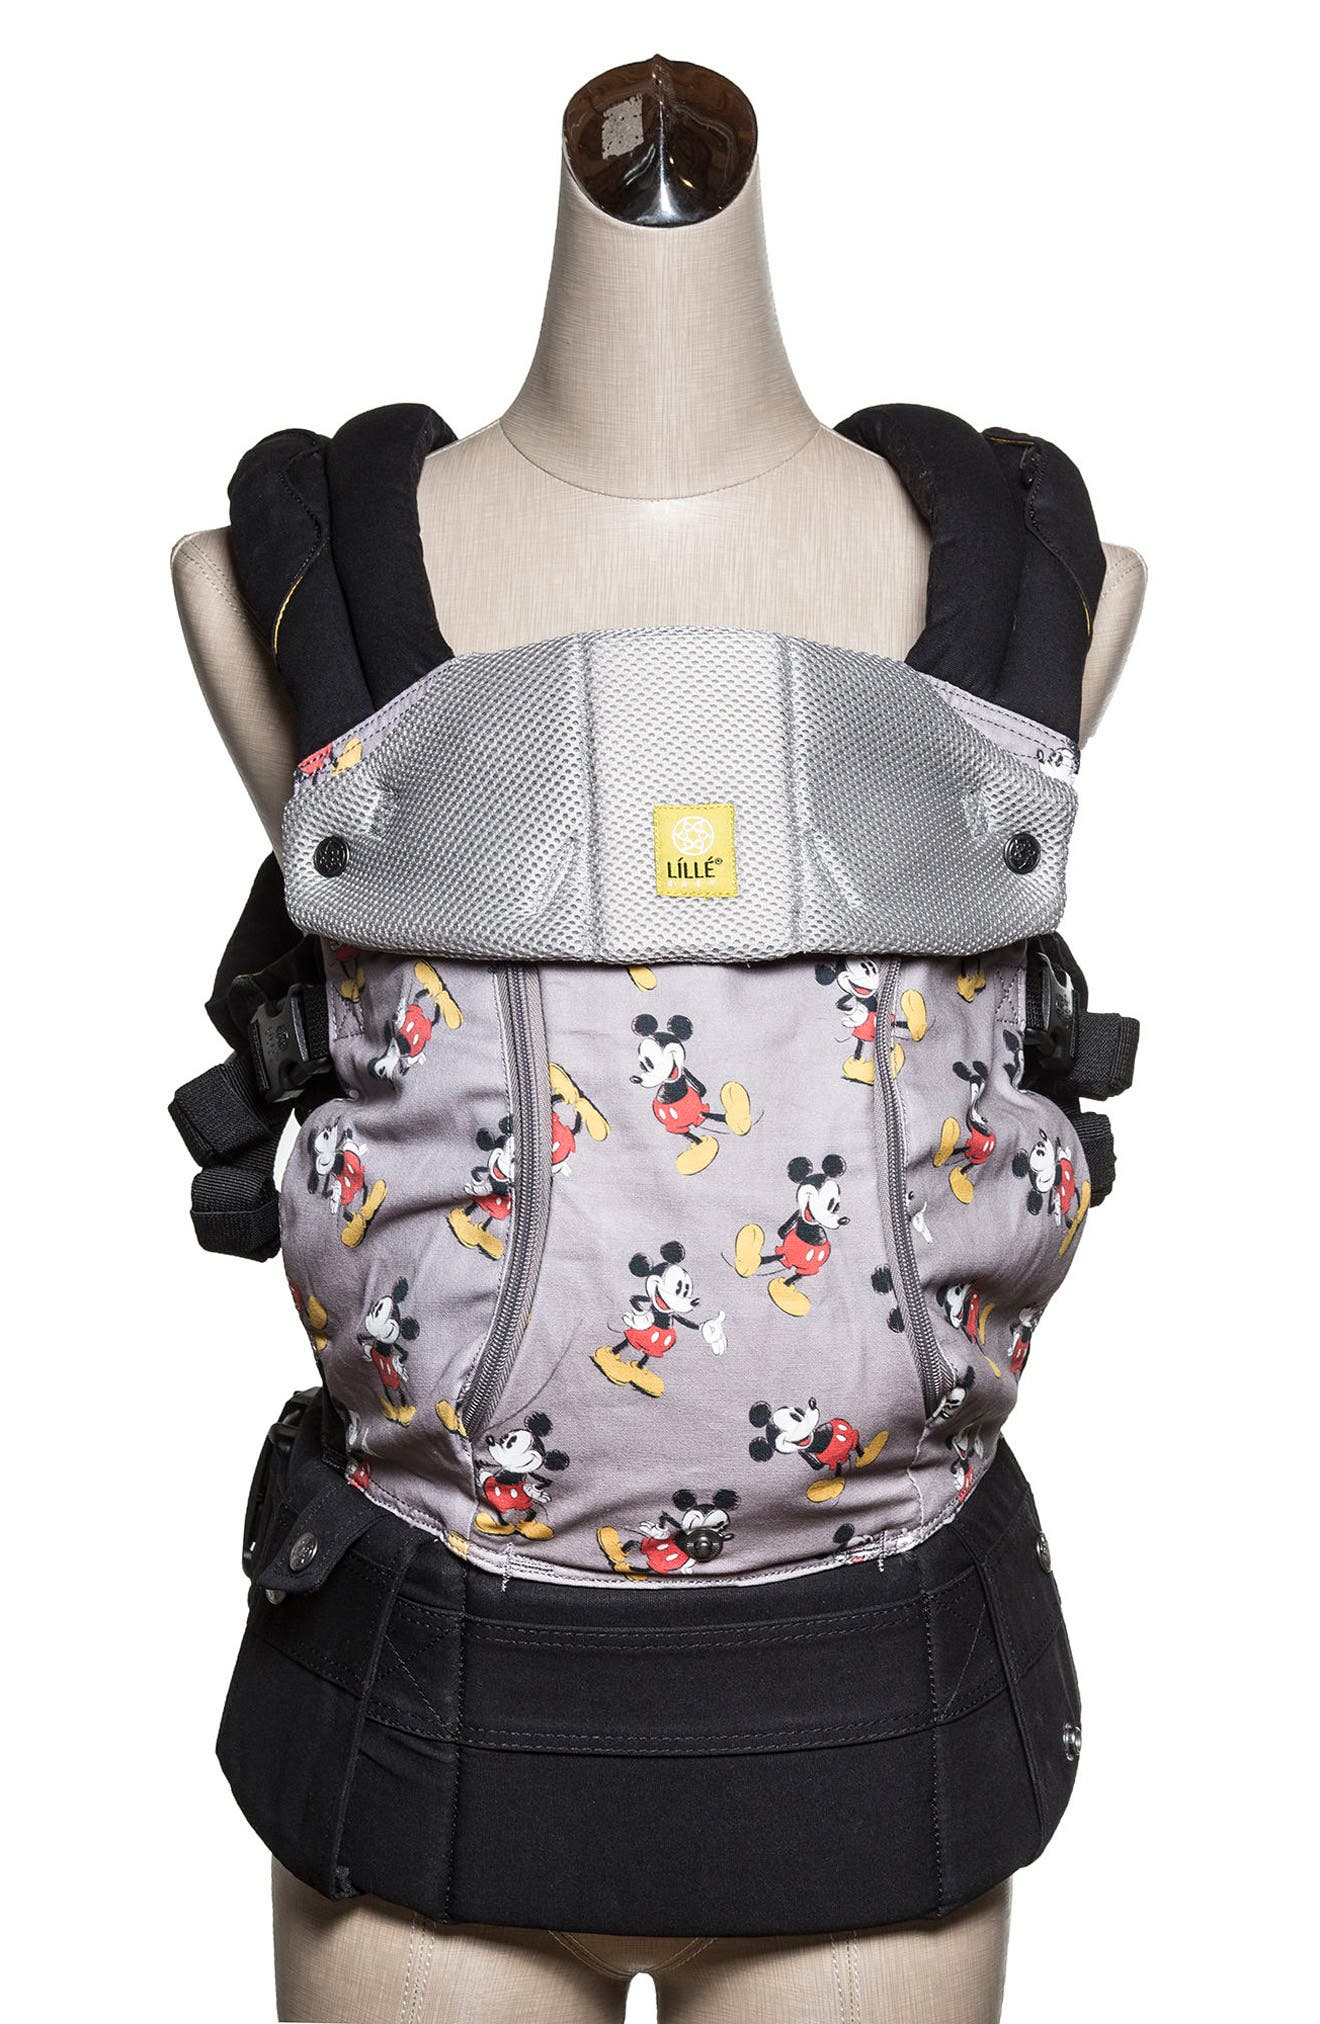 x Disney<sup>®</sup> Complete All Seasons - Mickey Mouse Classic Baby Carrier,                         Main,                         color, 001